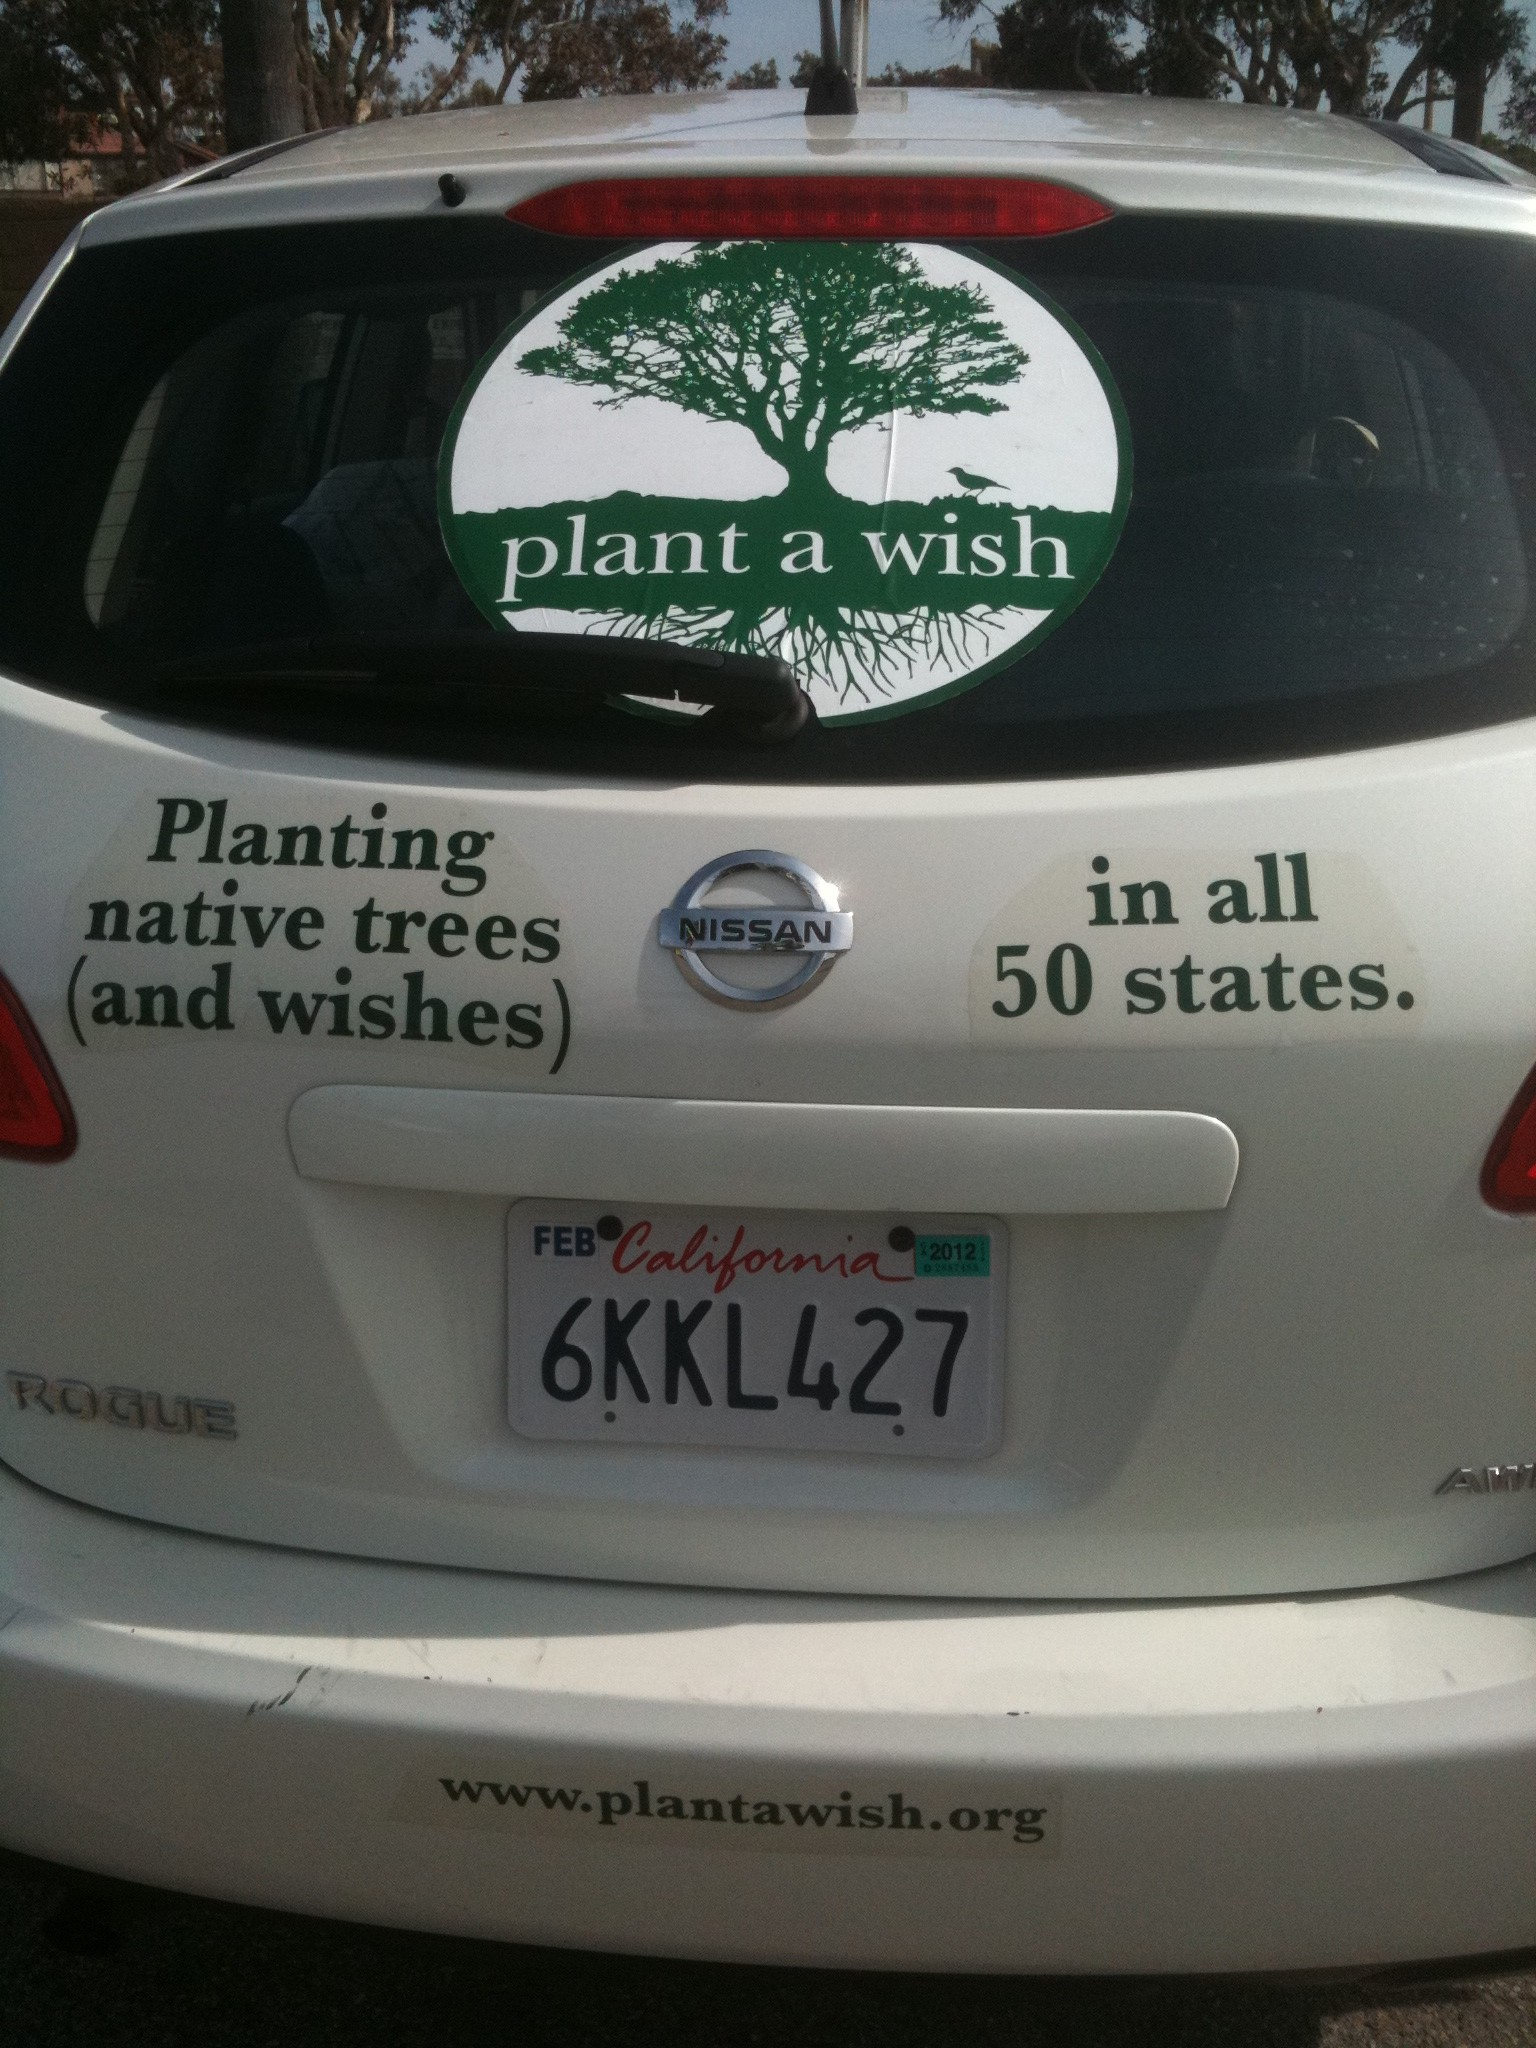 Plant a Wish Tour Vehicle: What's Inside?